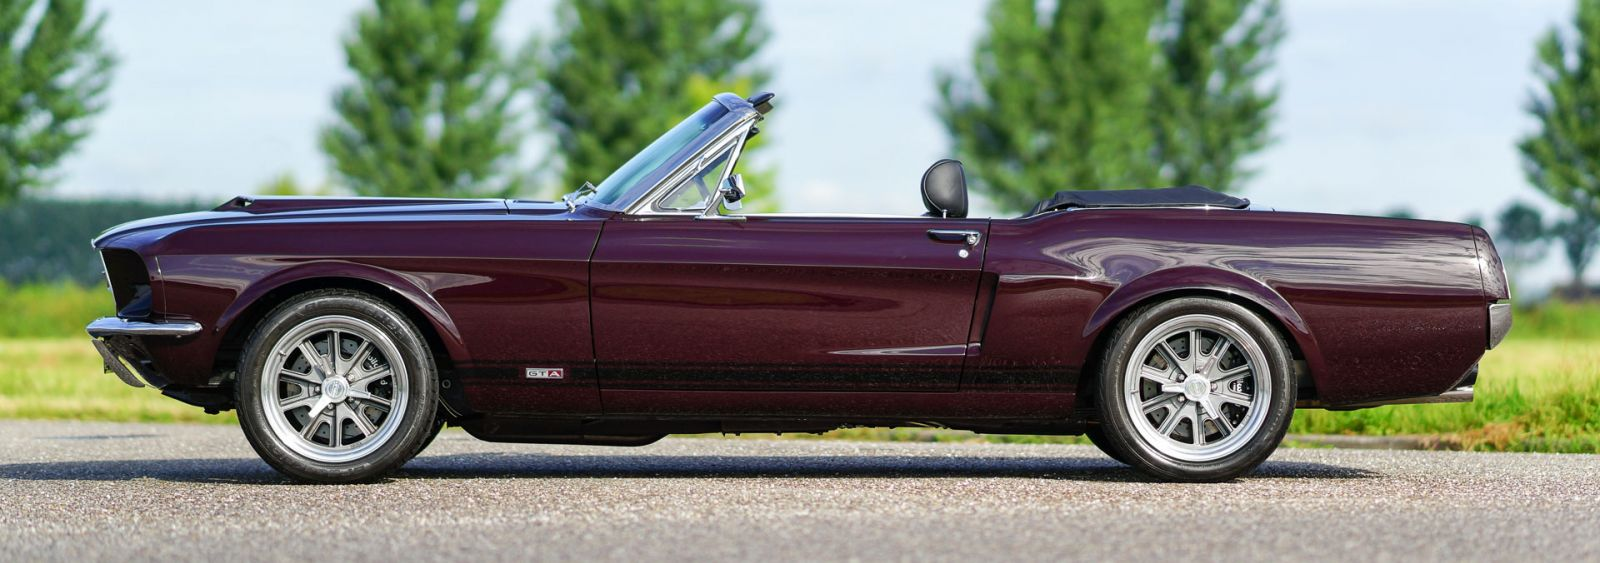 Ford mustang convertible 1966 classicargarage fr for Garage ford peronne 80